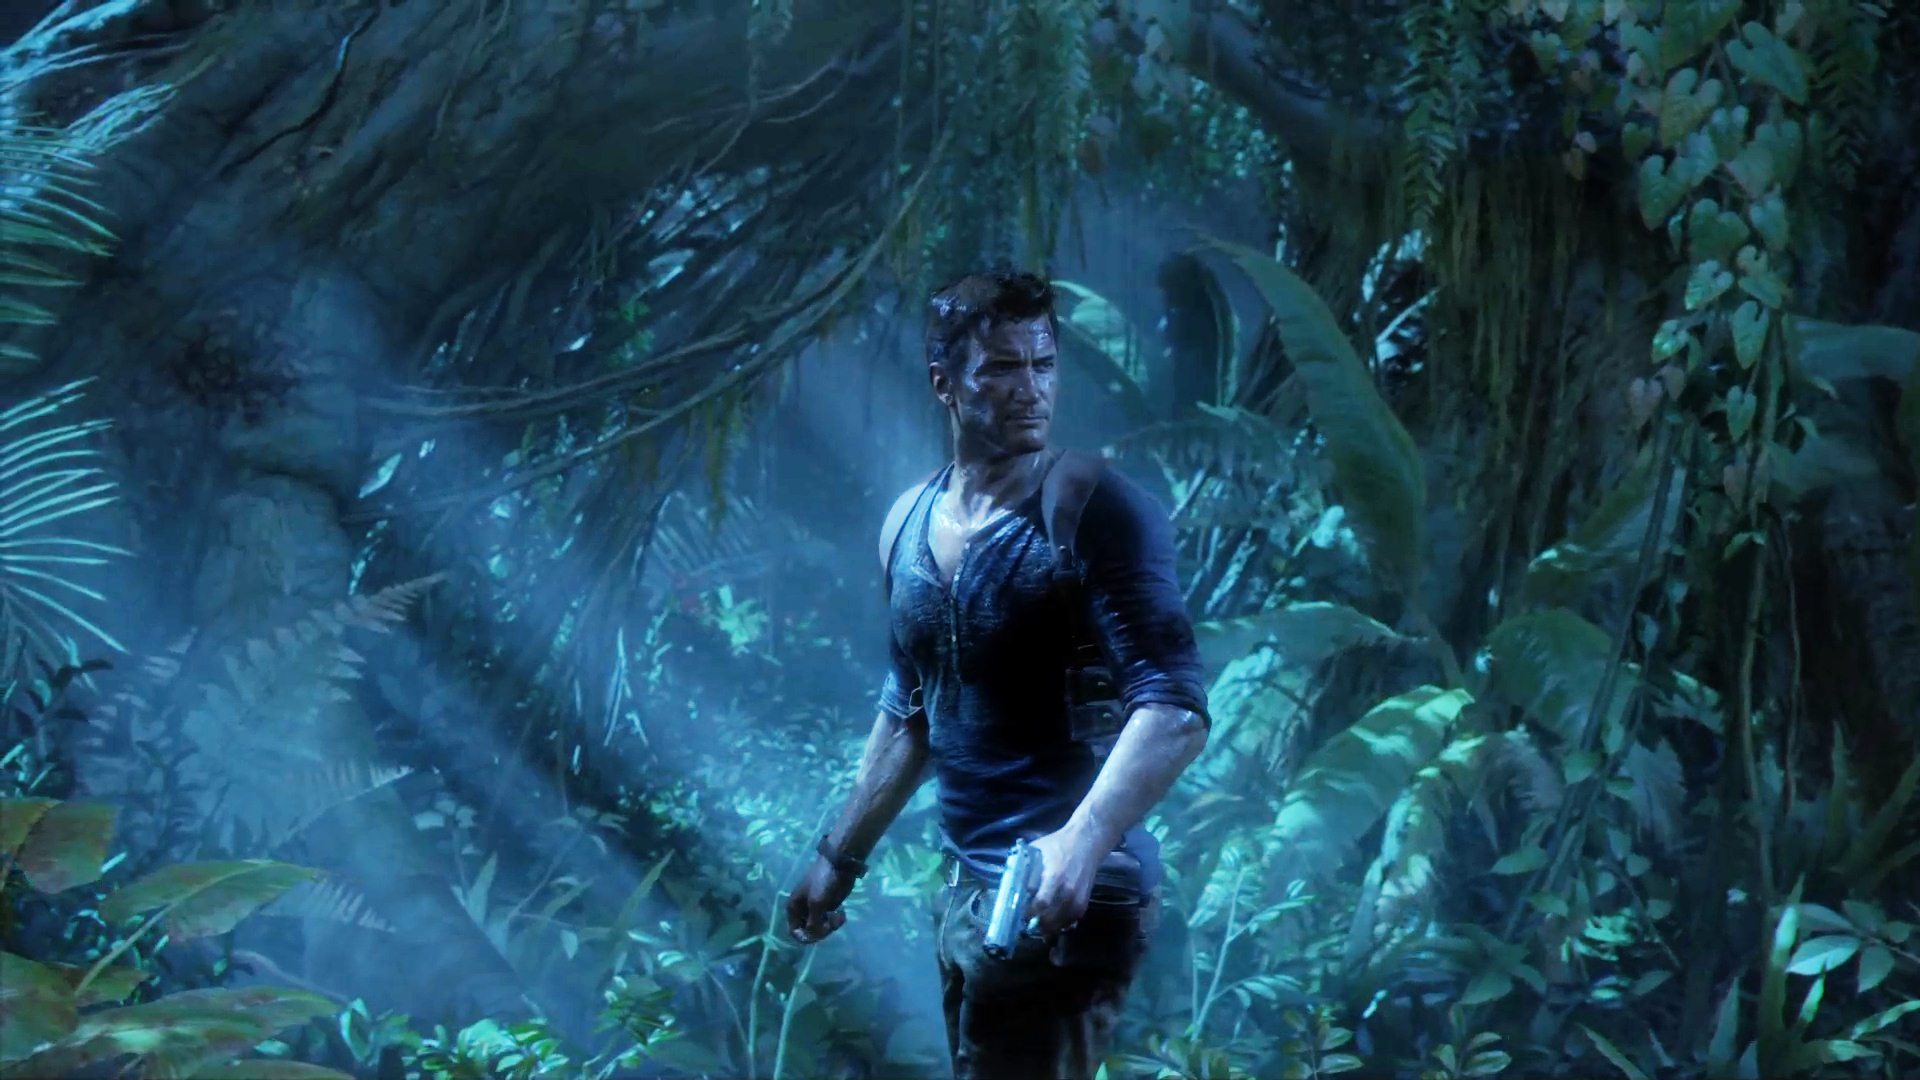 Naughty Dog Shows Uncharted 4 S Debut Gameplay At Psx Esports